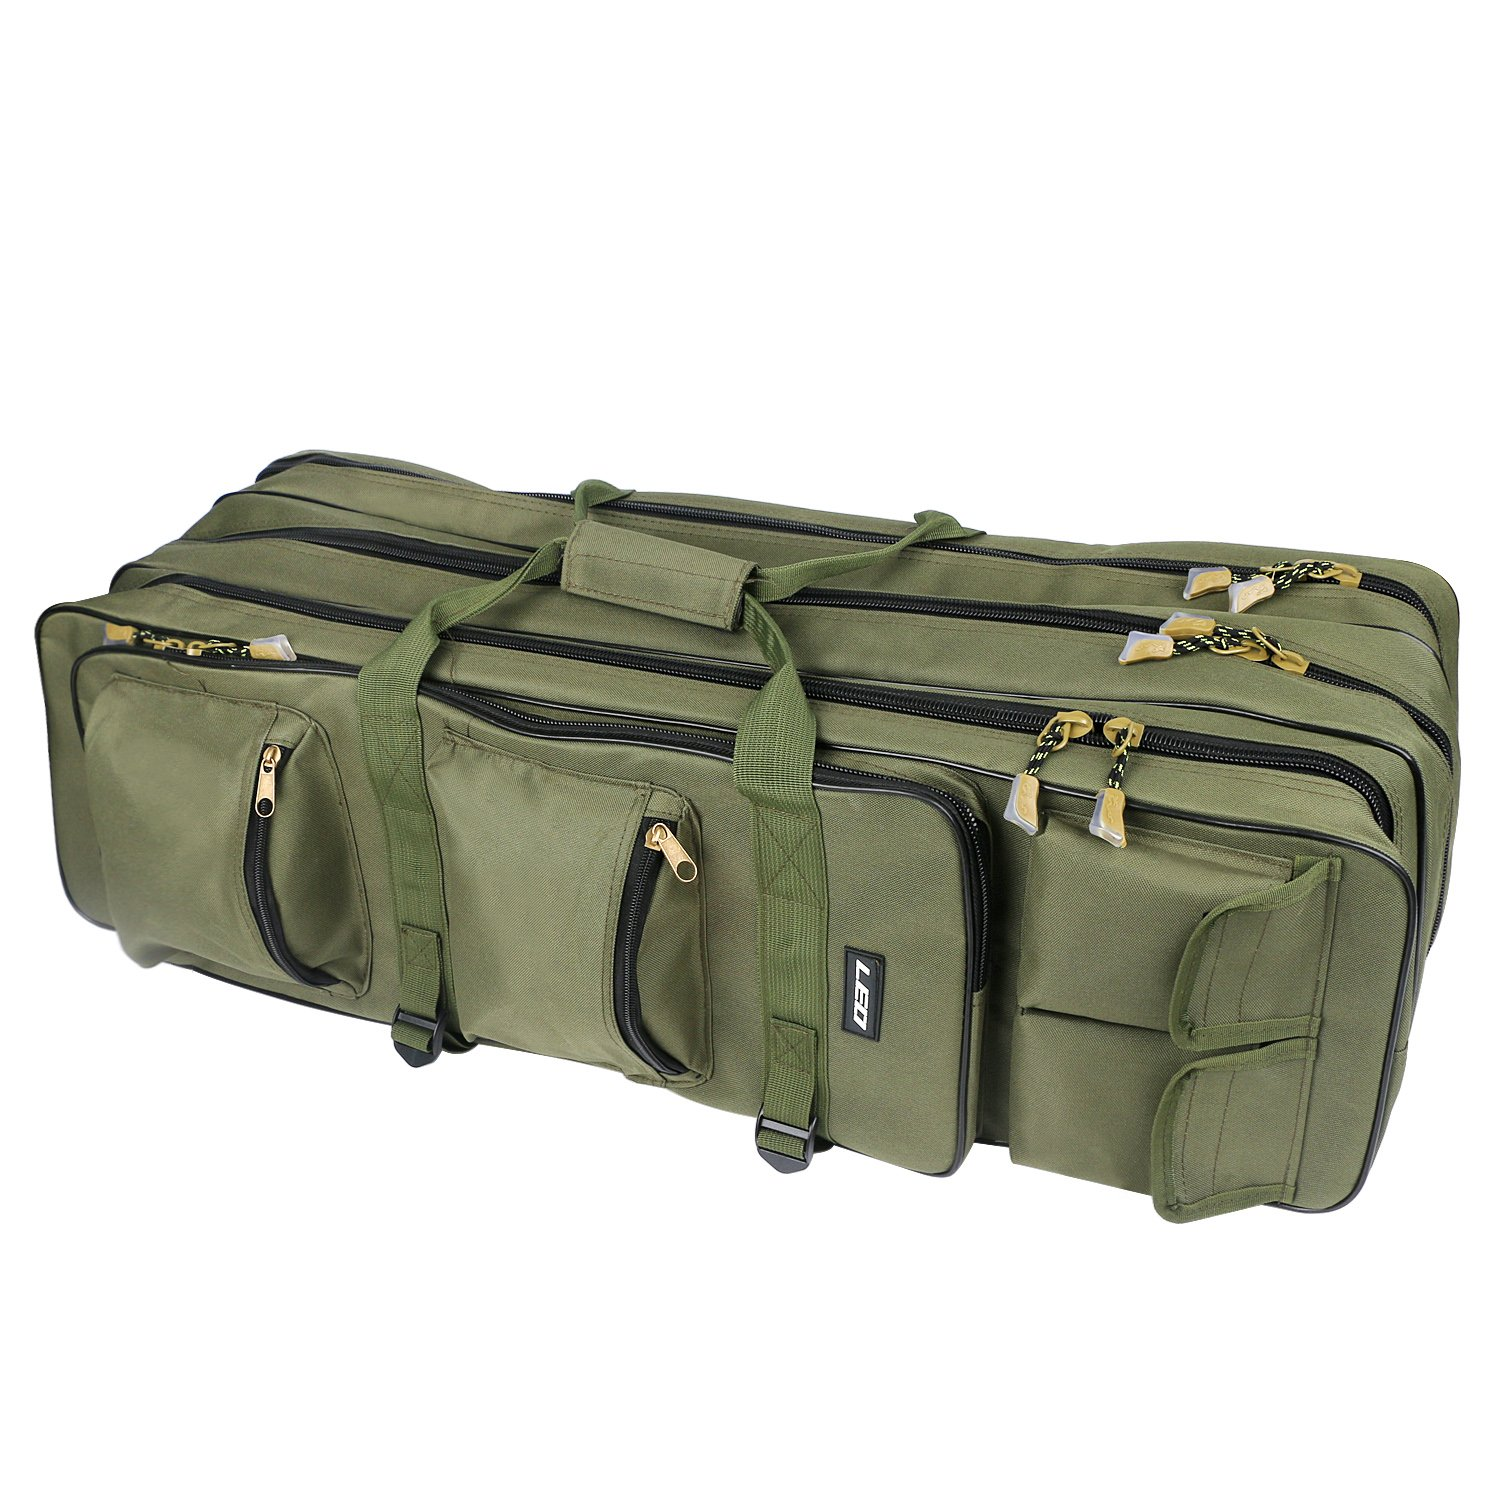 Fishing Rod Carrier Bag 31.5-Inch Portable Waterproof Canvas Fishing Pole Reel Case Storage Bag Large Capacity Triple Layer Travel Carry Case Holder Fishing Gear Organizer